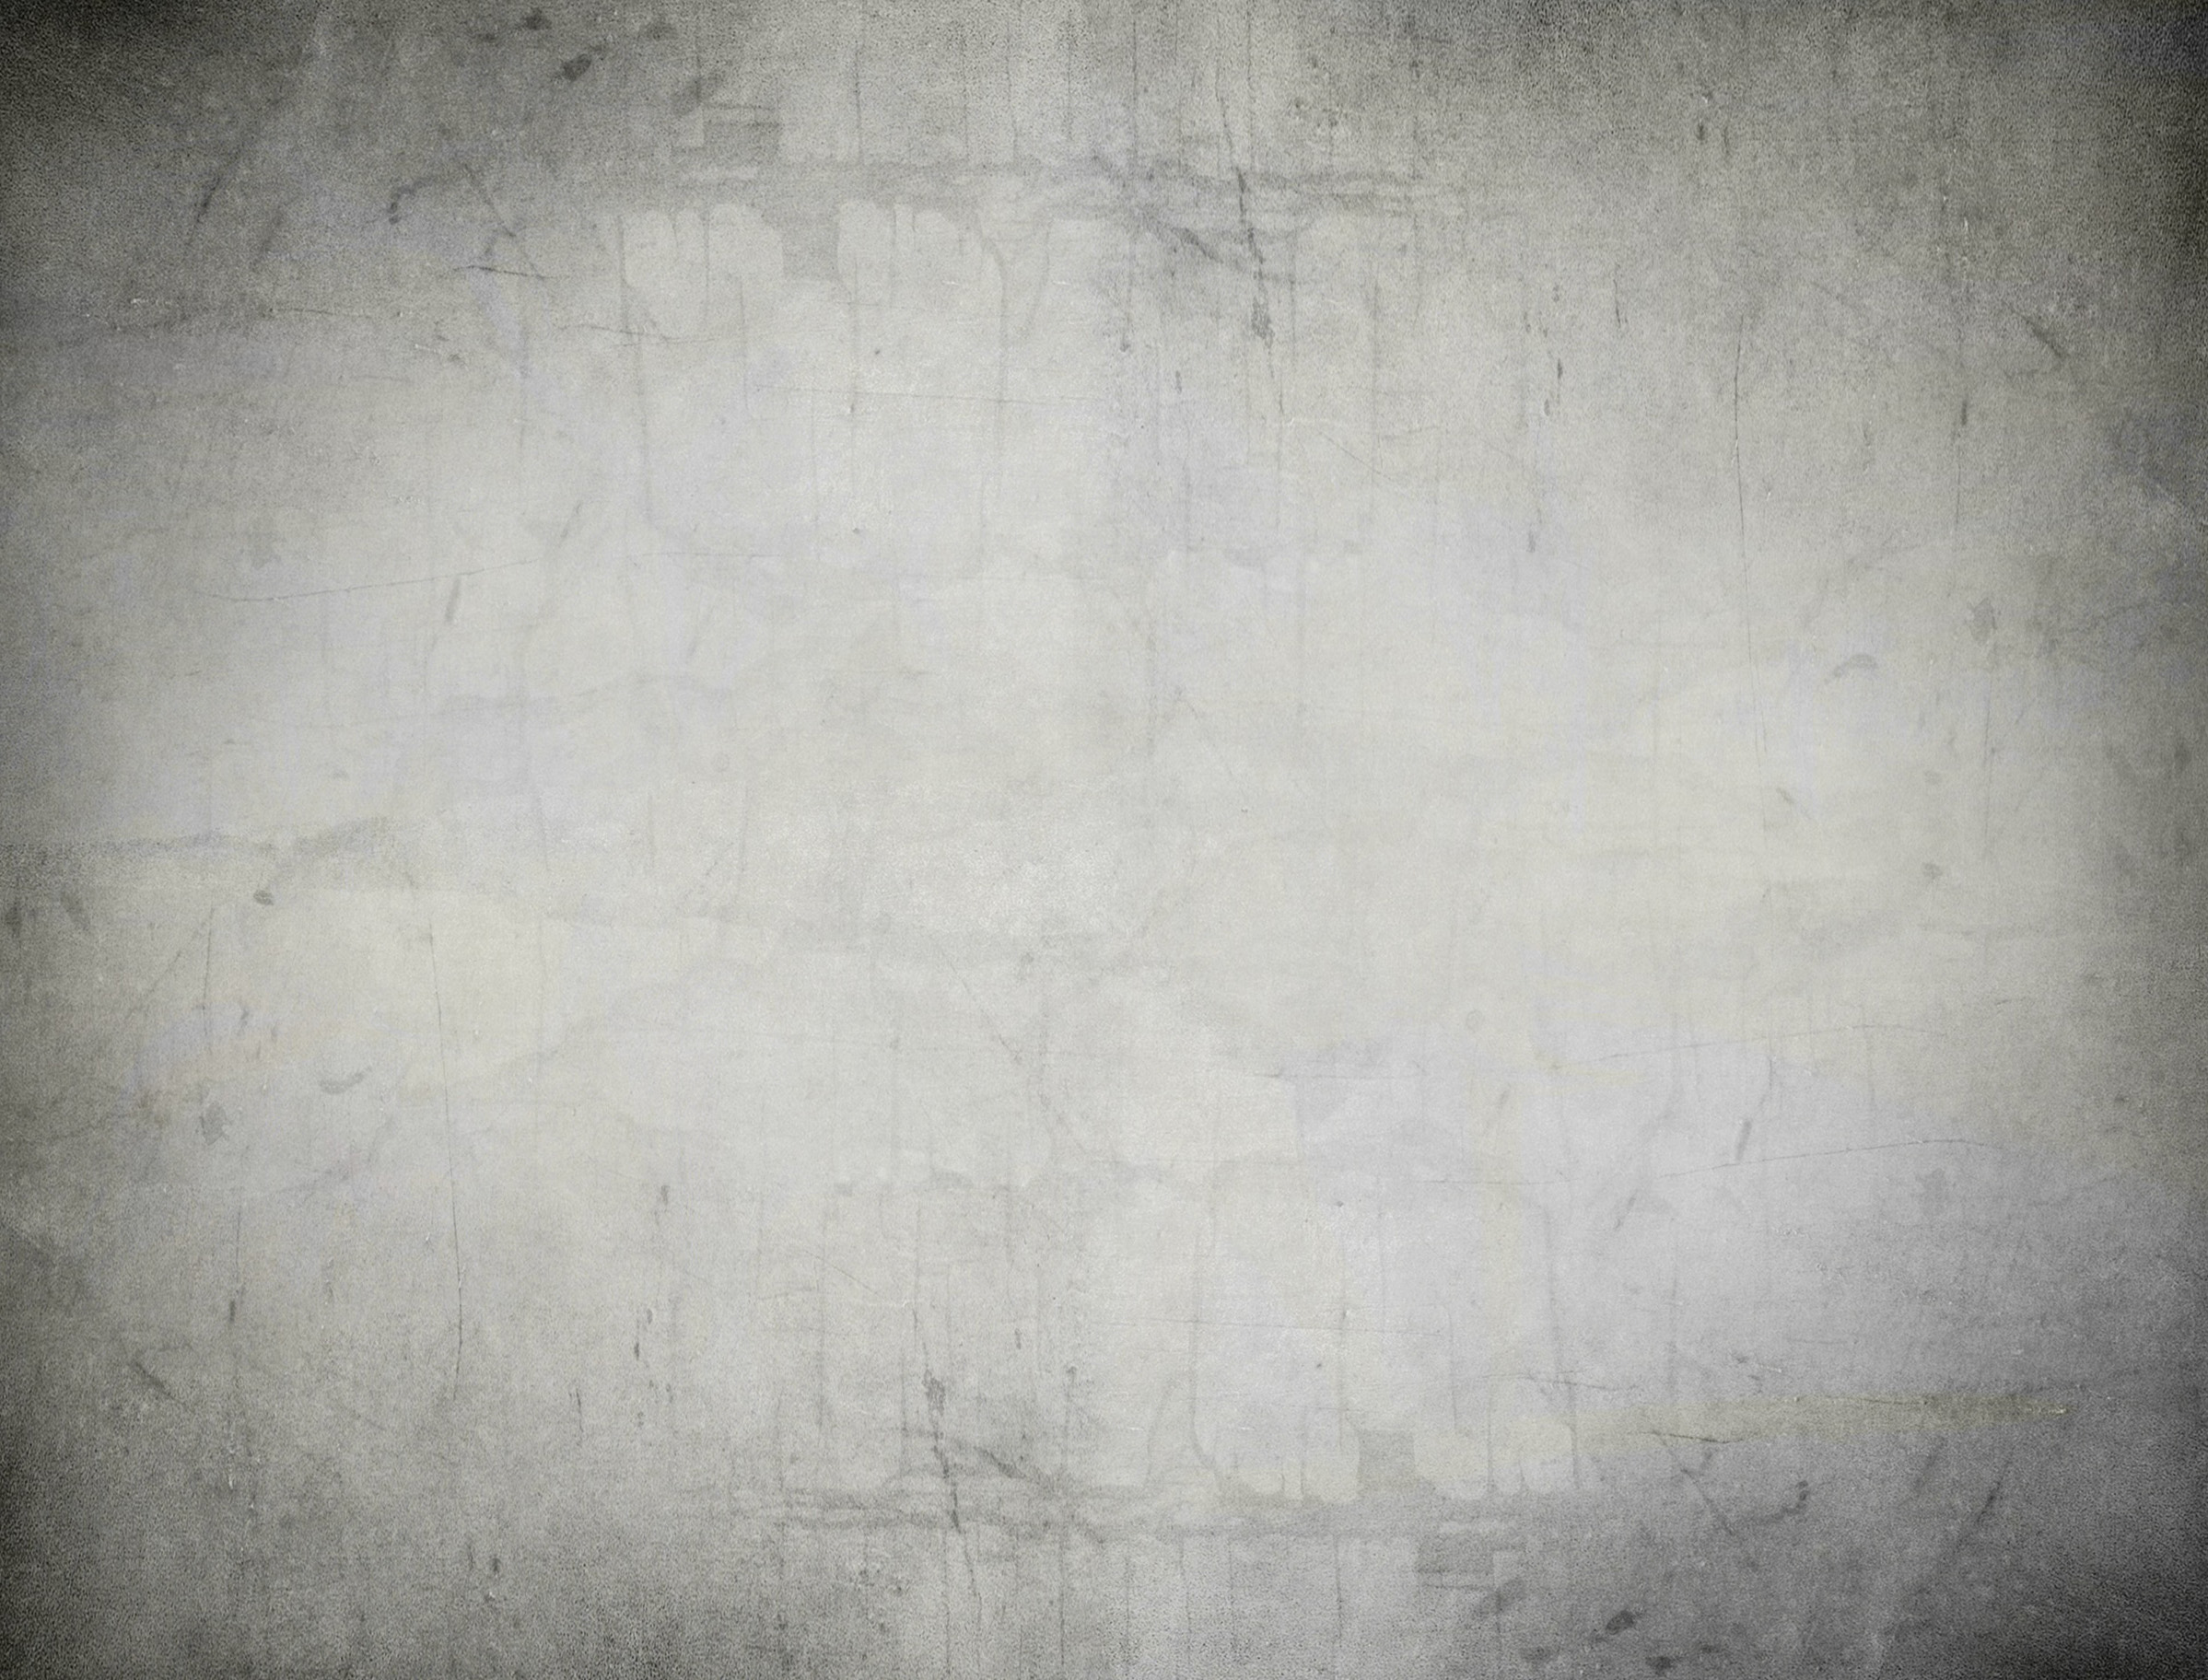 Gray concrete grunge texture background, Abstract, Material, Parchment, Painted, HQ Photo